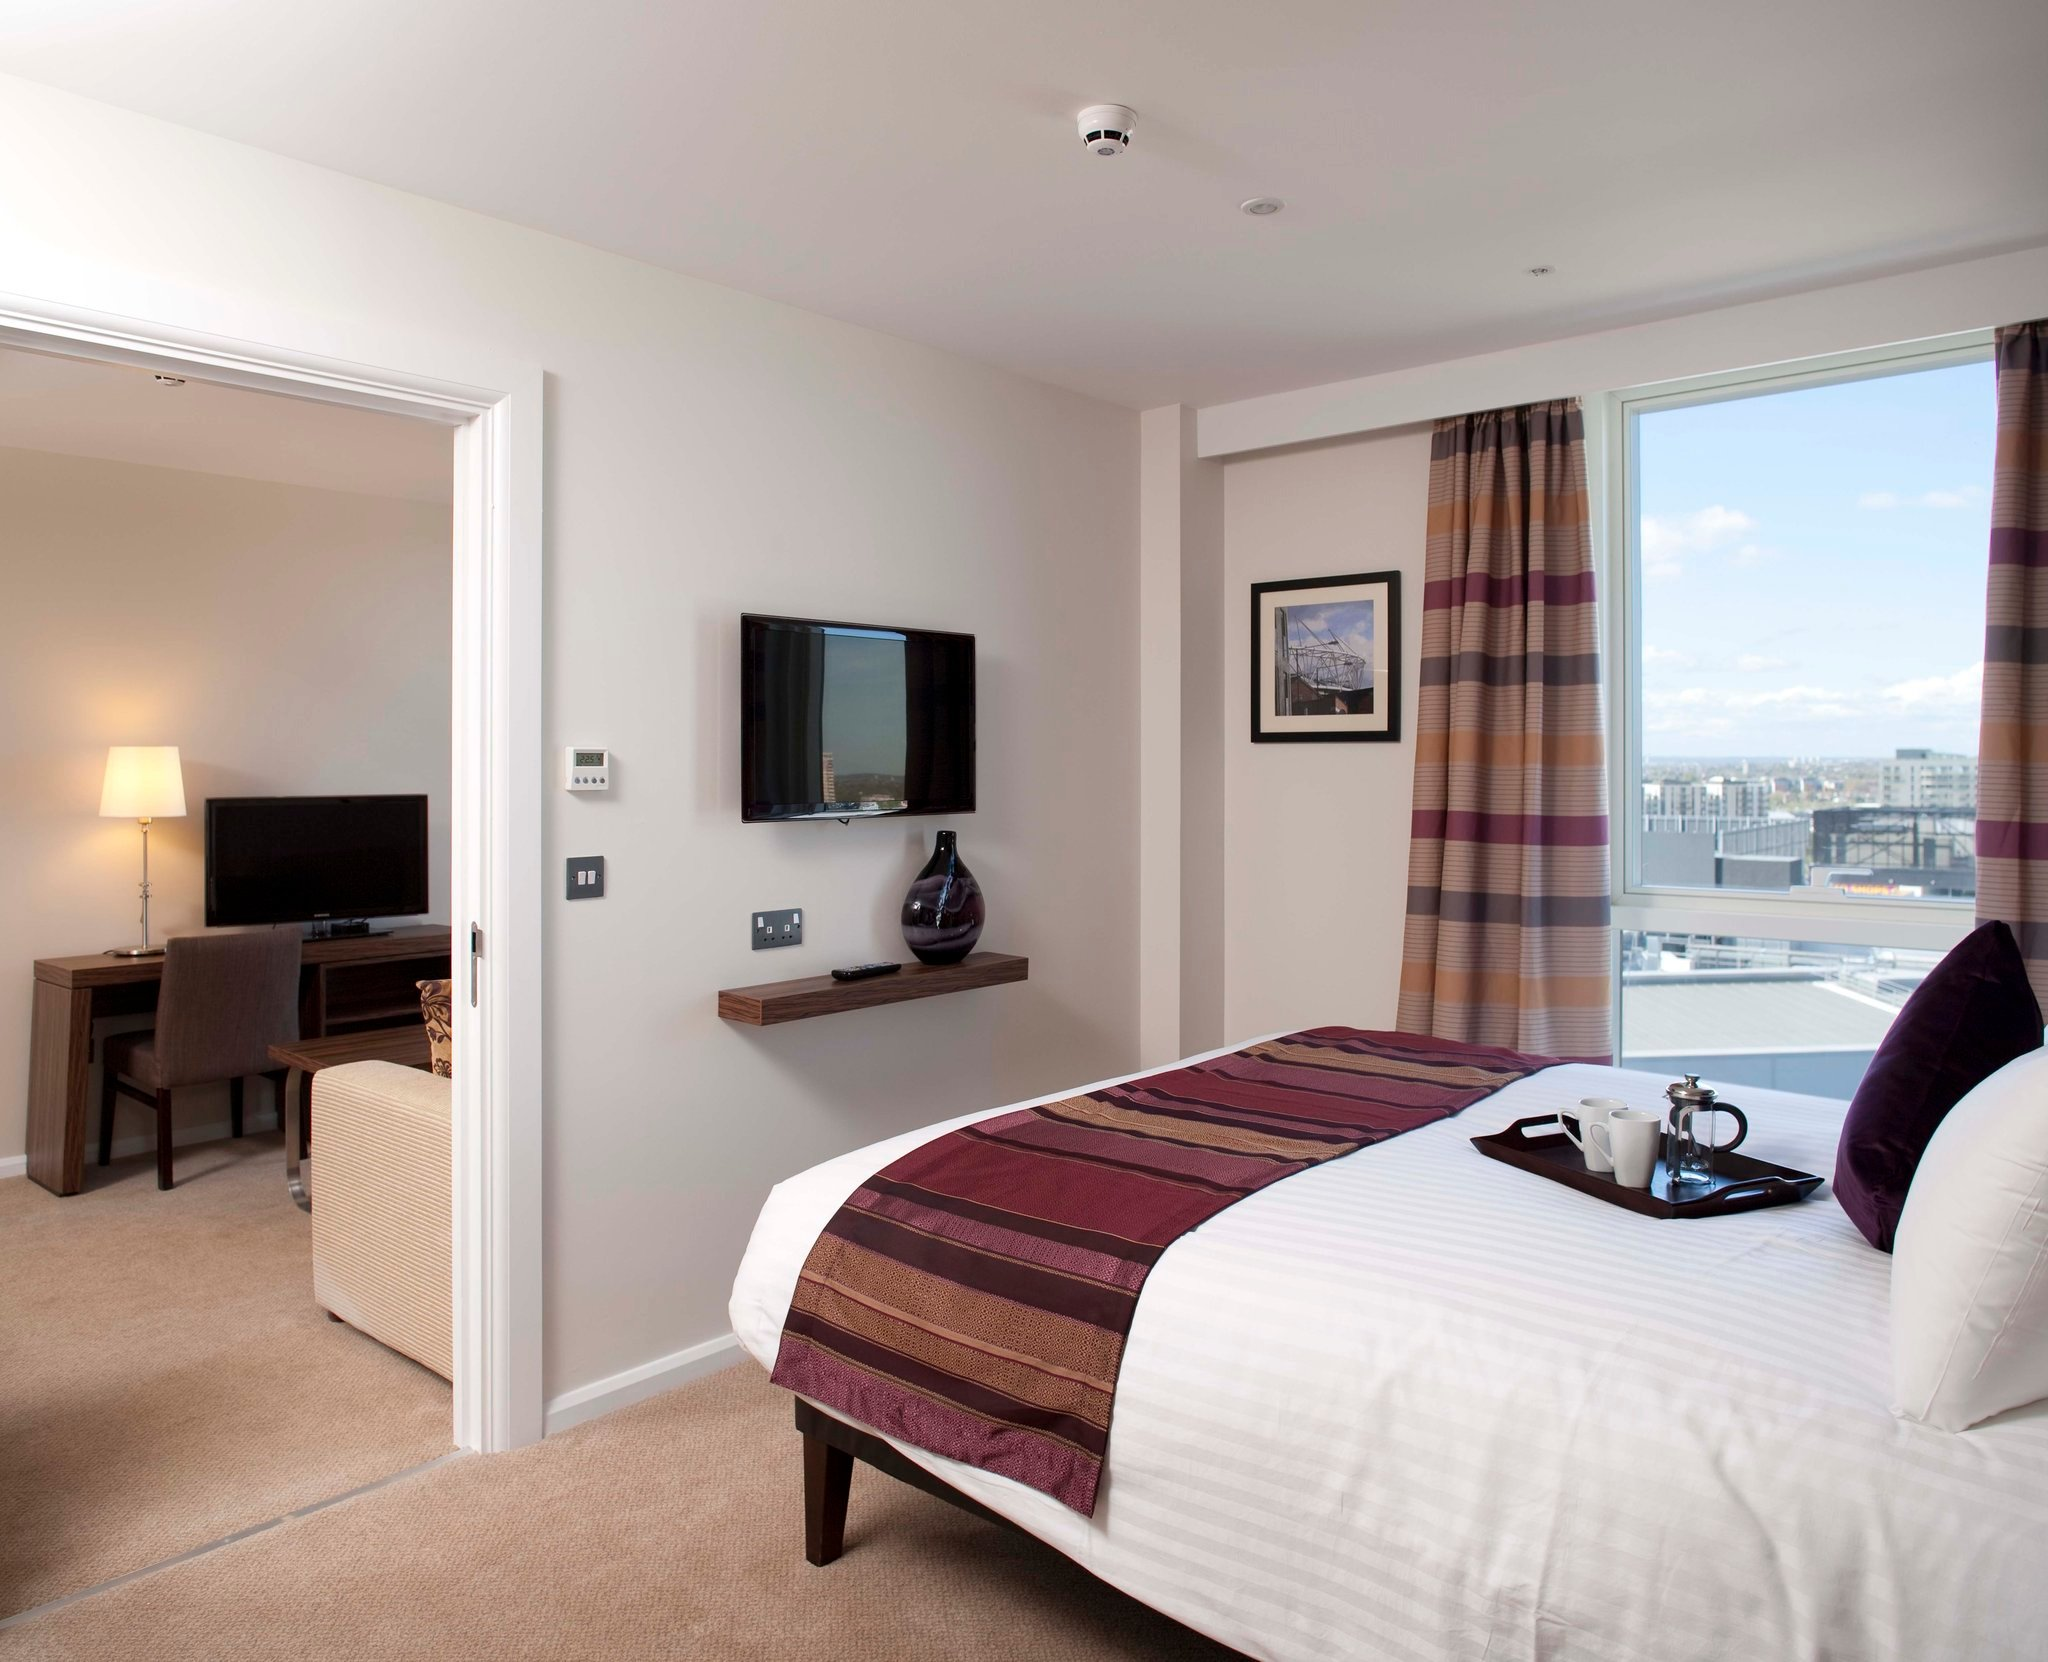 Staybridge Suites London-Stratford City